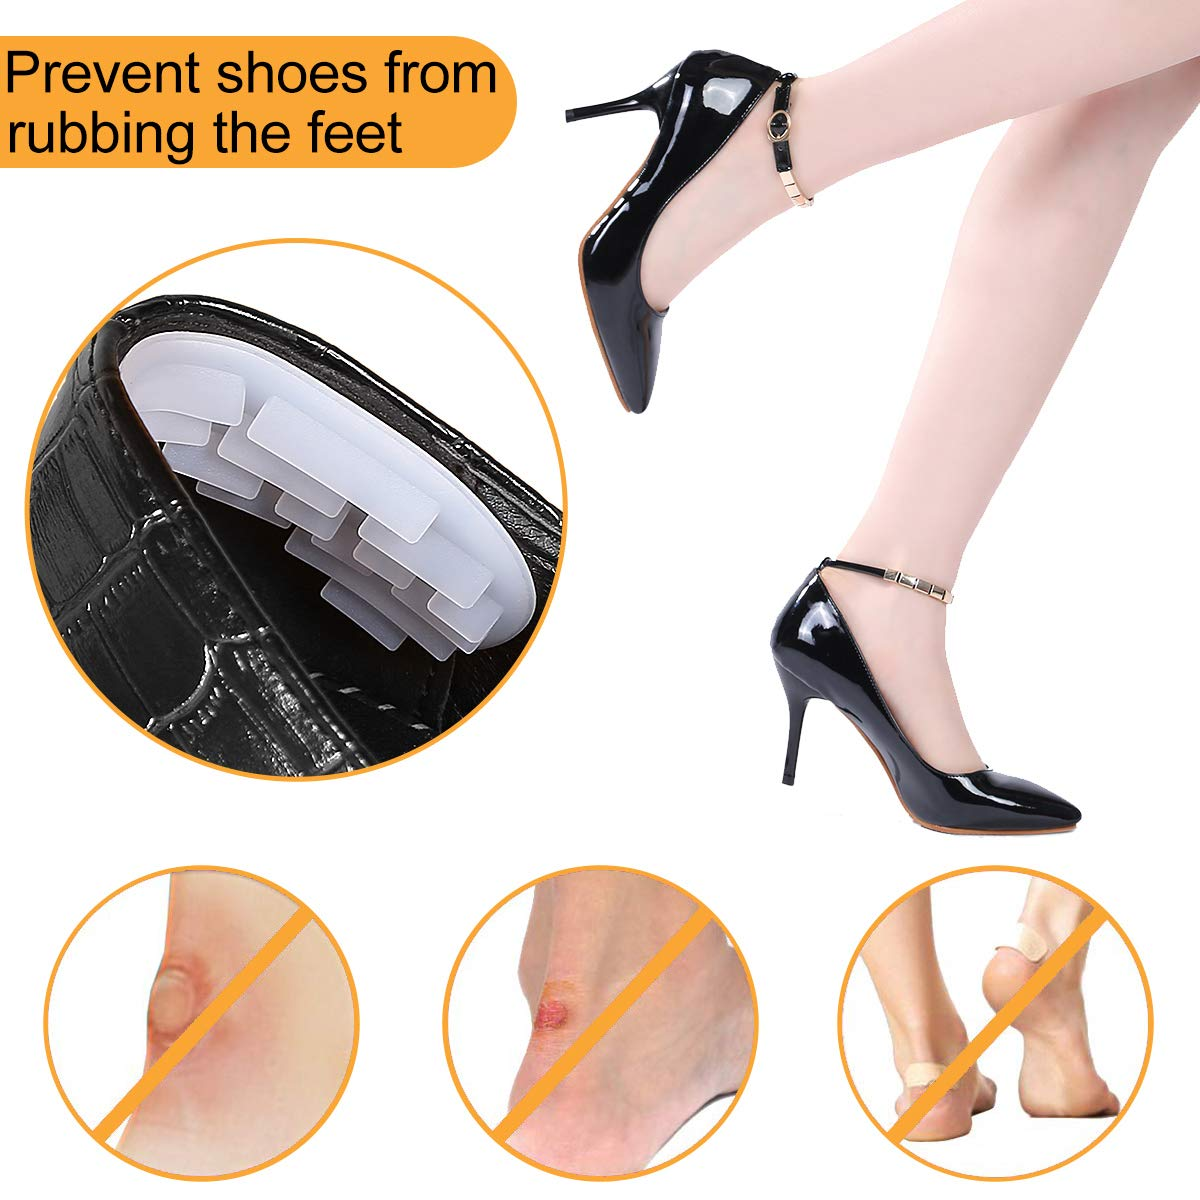 Heel Cushions Inserts Heel Grips Liner 4D Self-Adhesive Heel Pads for Loose Shoes, Improved Shoe Fit and Comfort (2 Pairs)